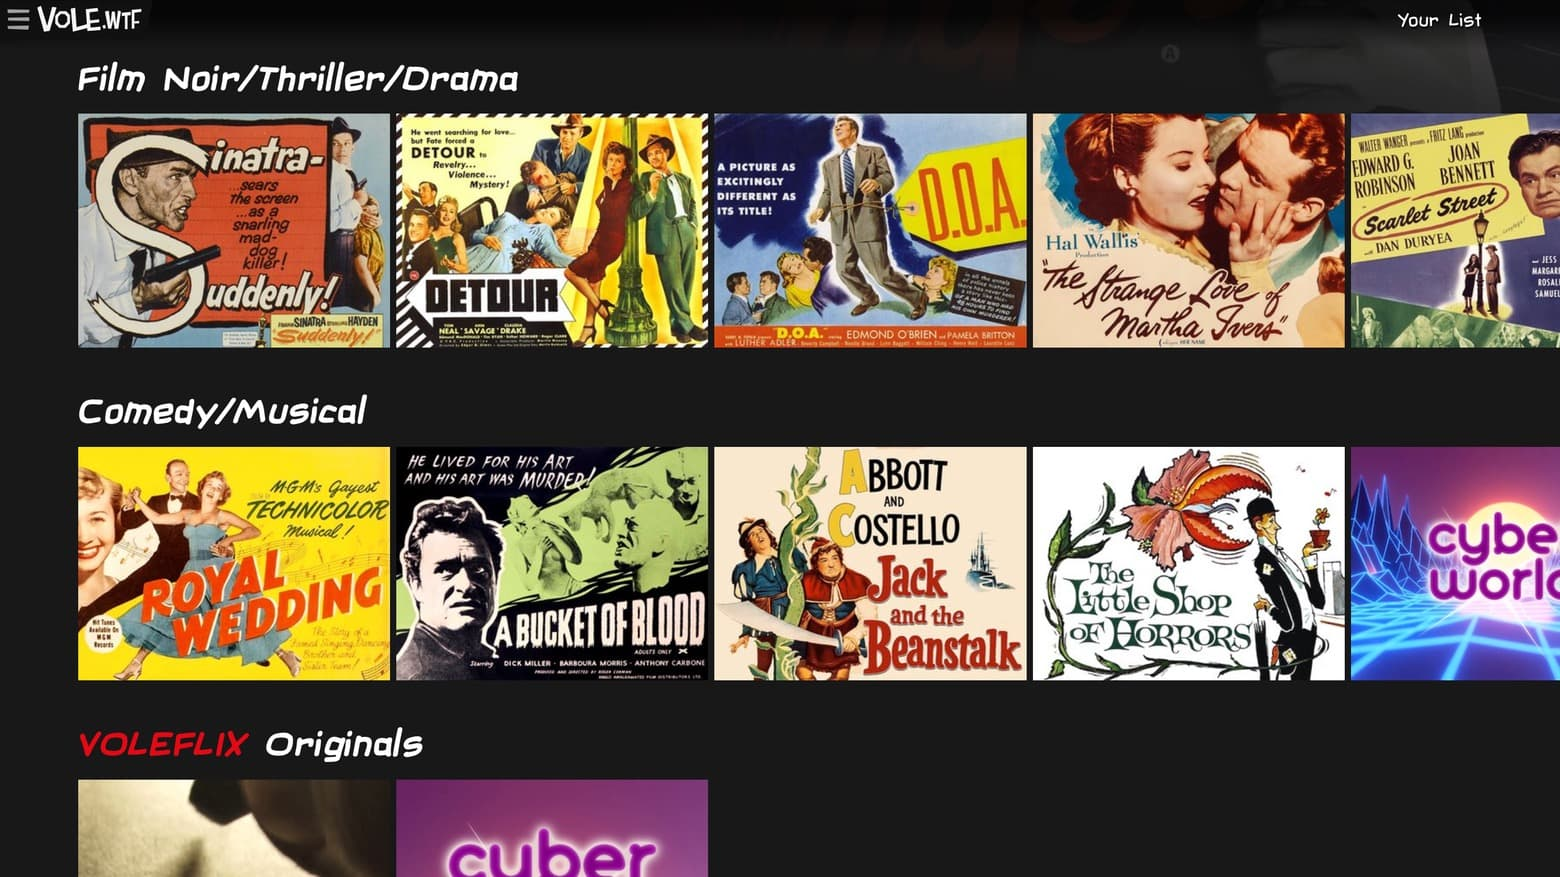 Everything on Voleflix is public domain and free.